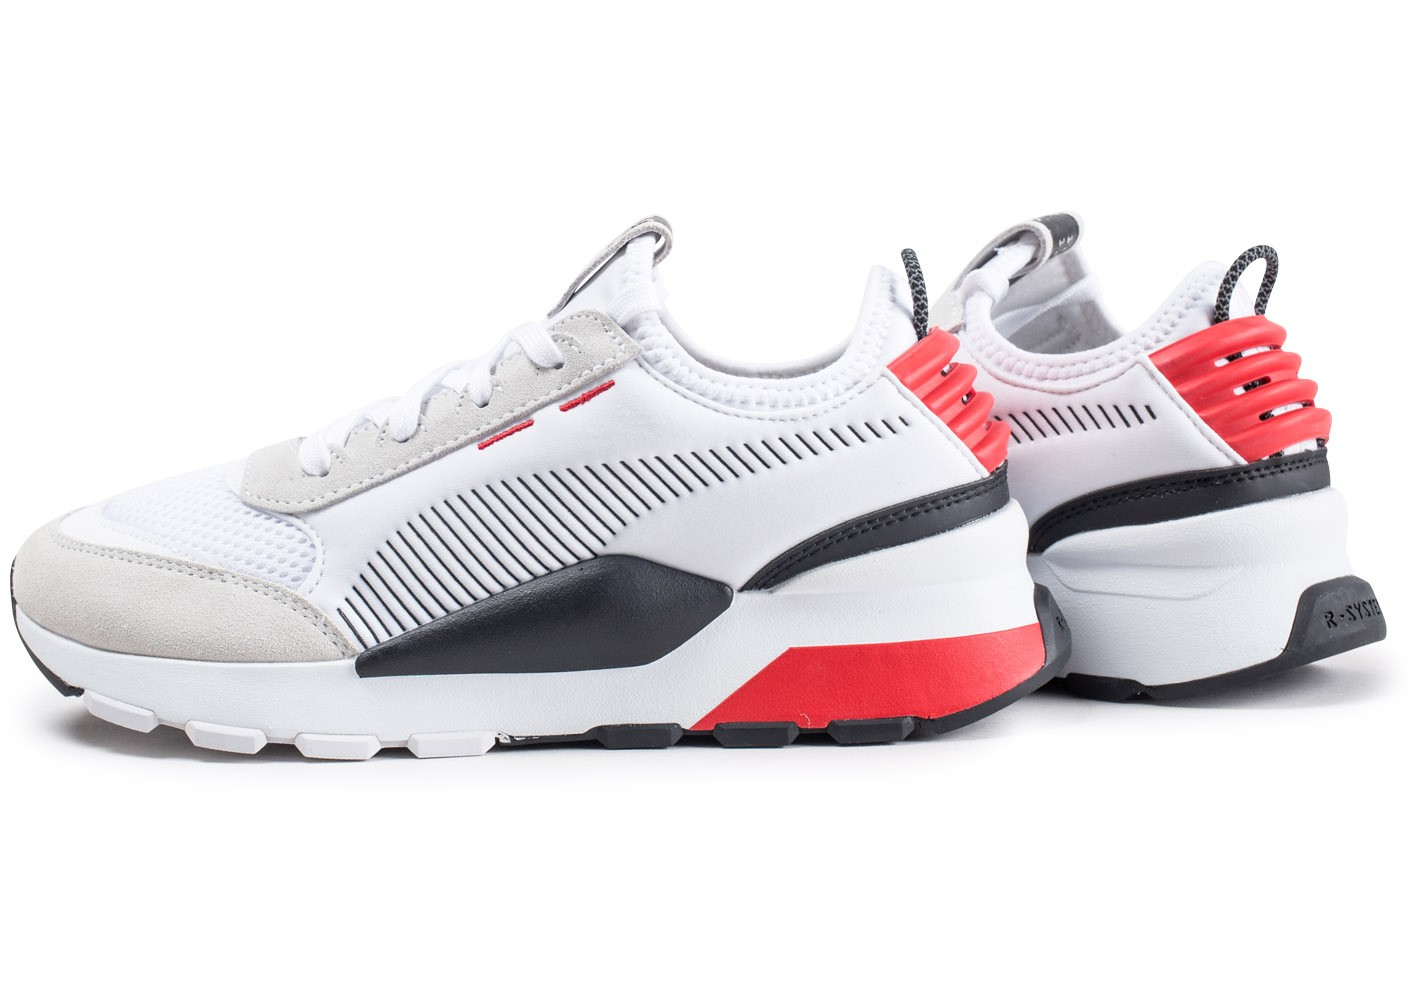 Puma RS 0 Winter Toys blanc Chaussures Baskets homme